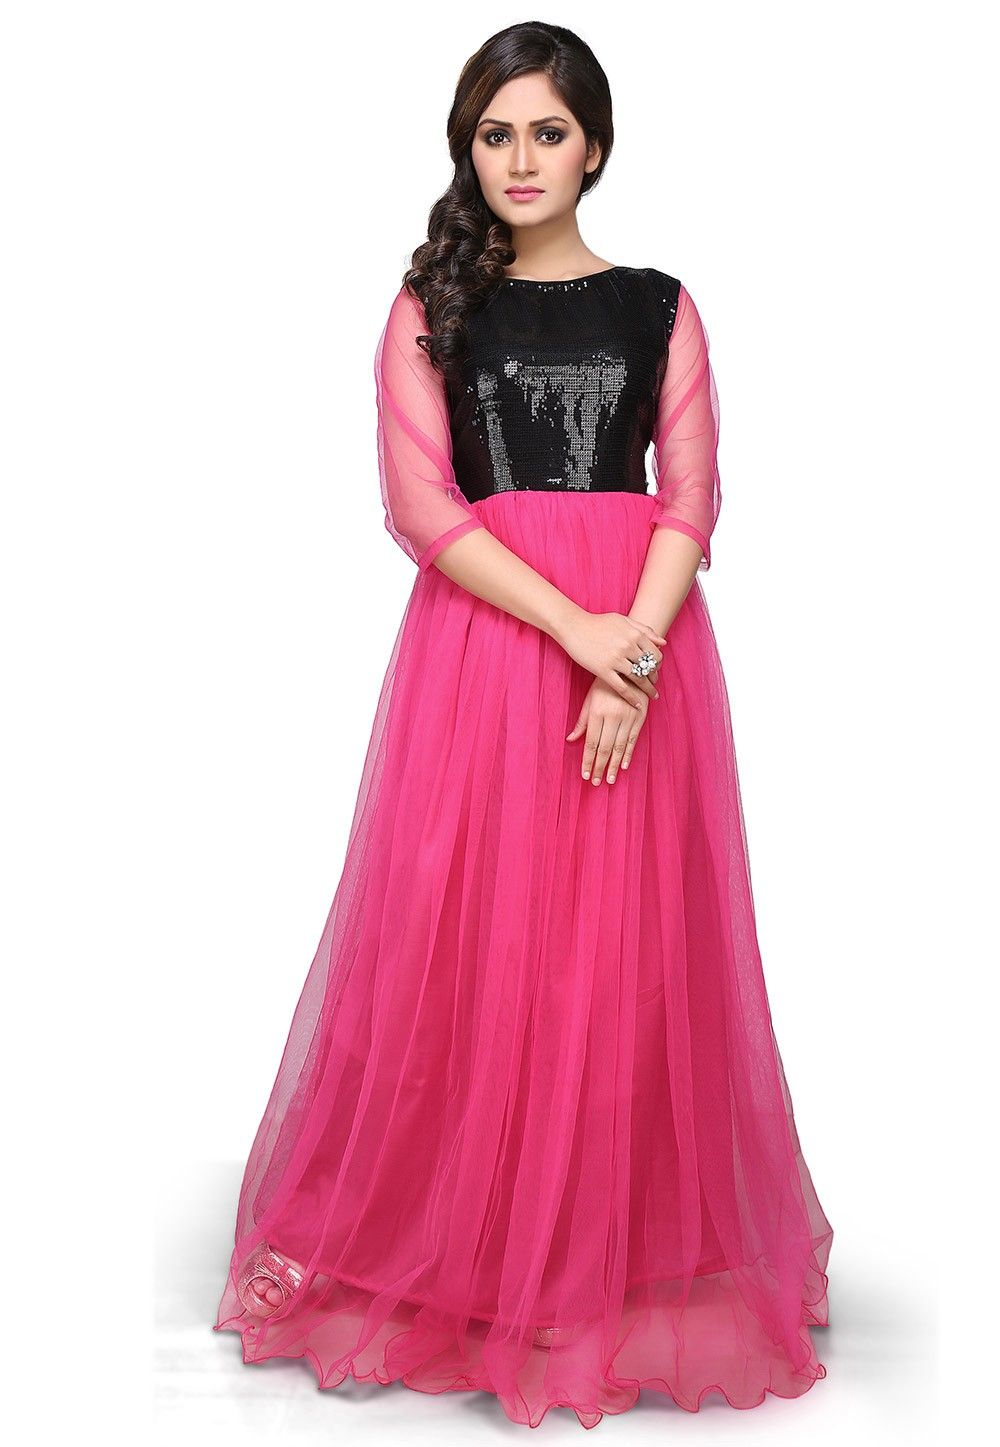 Embroidered Net and Dupion Gown In Fuchsia and Black